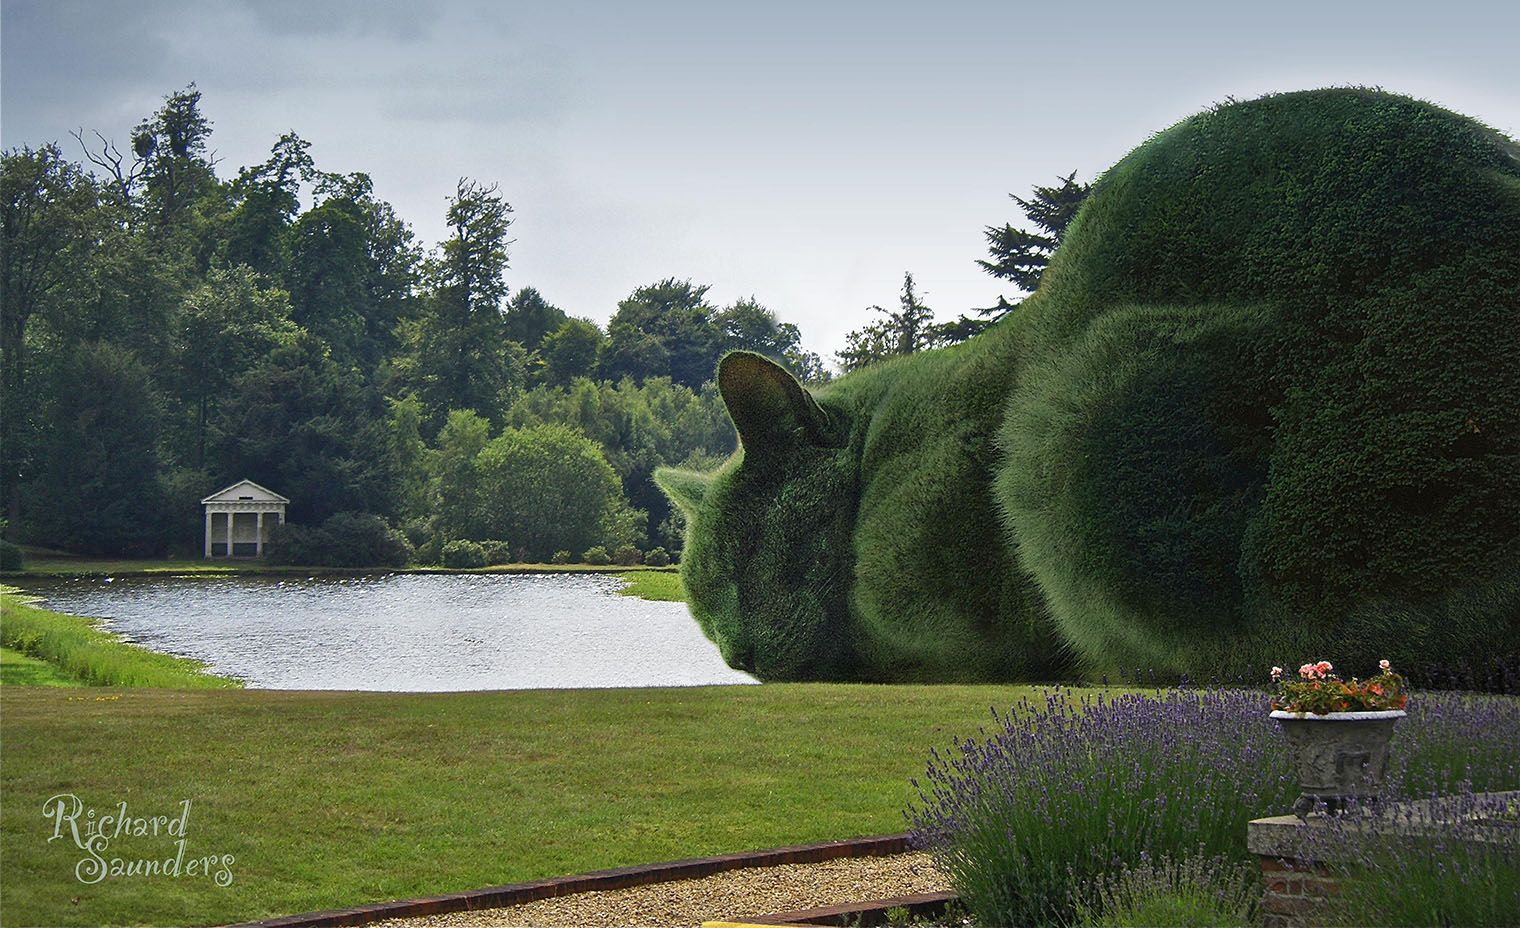 Giant green cat in garden...a sculpture? Plant? The Topiary Cat was inspired by Tolly, Richard Saunders' Russian blue cat....photos touched upp  by photoshop.